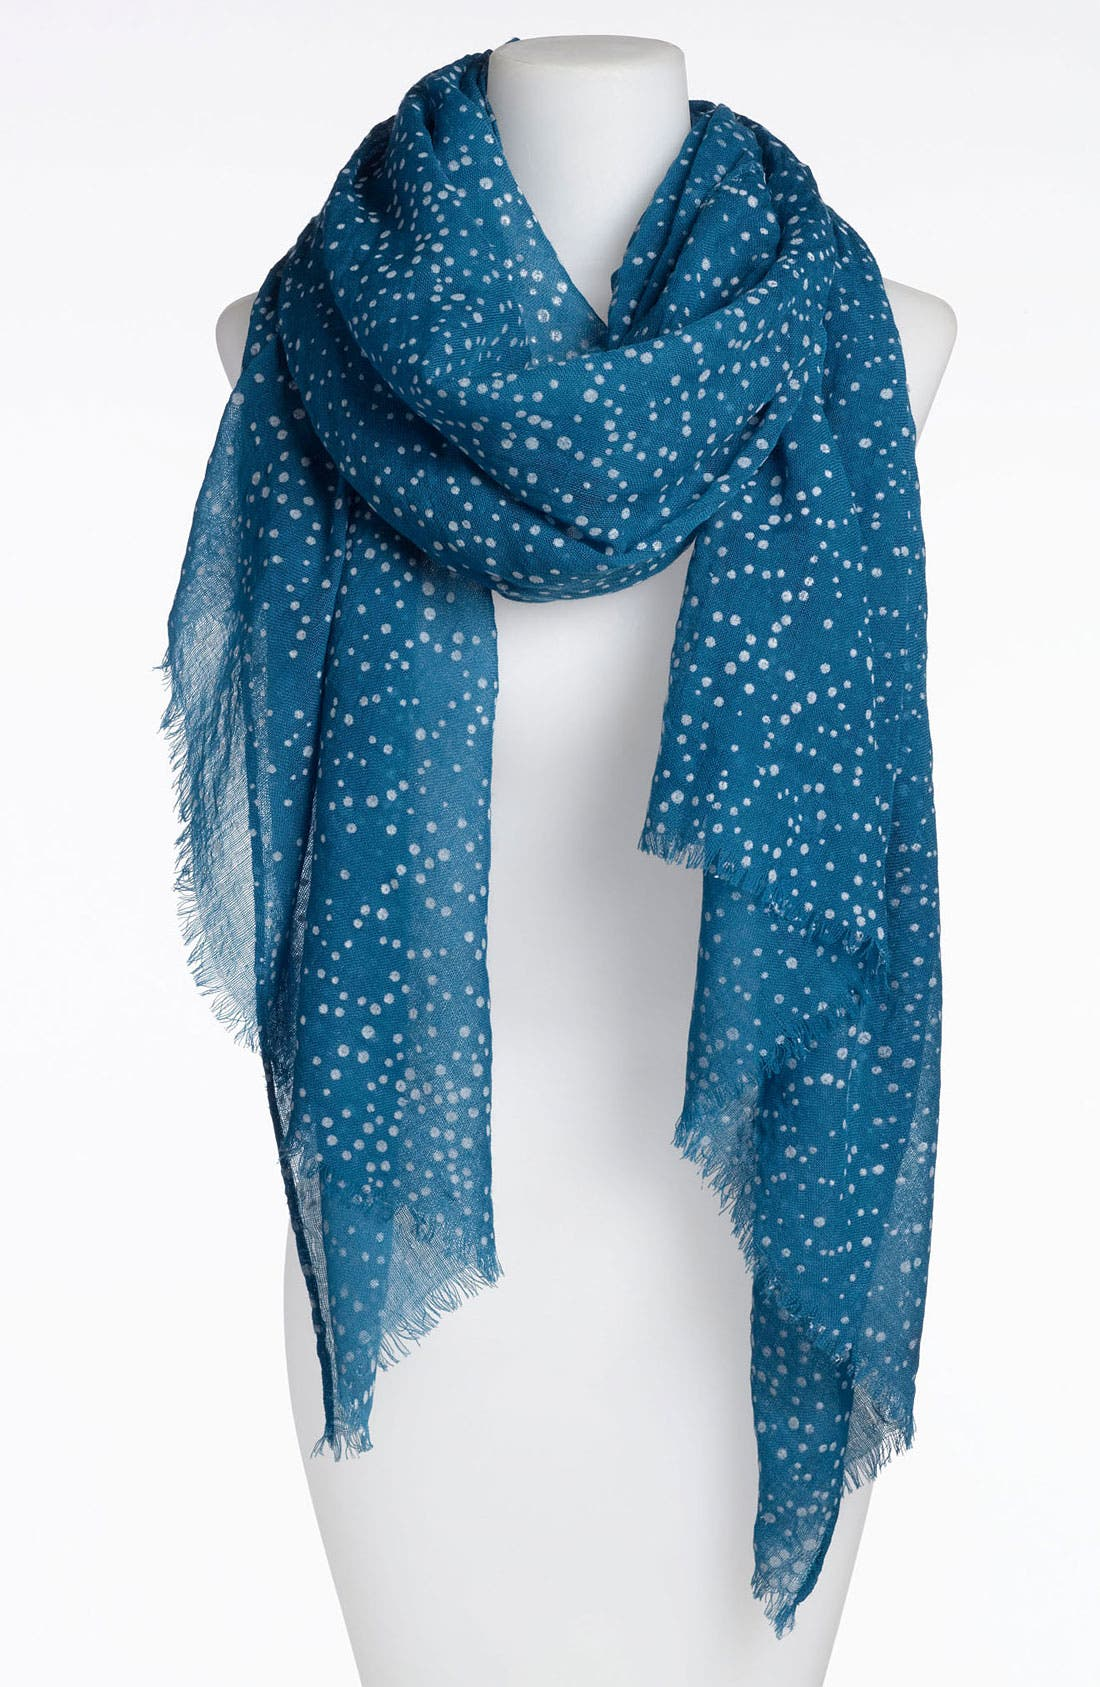 Main Image - Roffe Accessories 'Dots' Wool Scarf